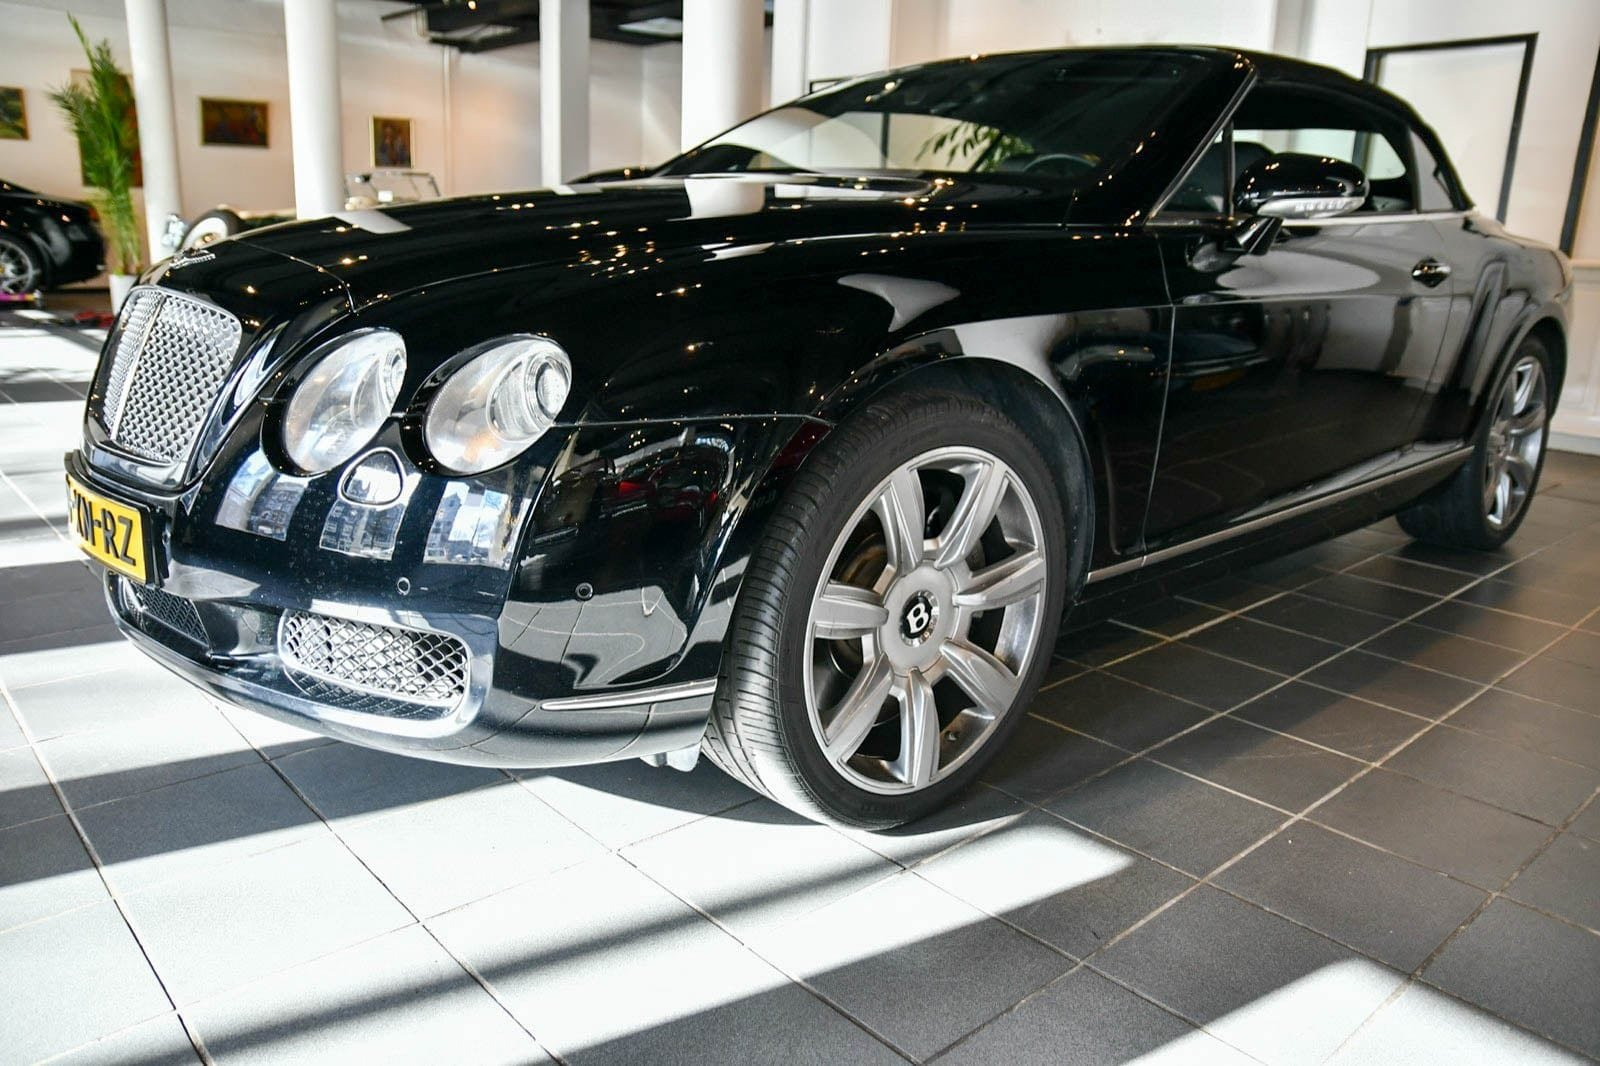 Bentley Continental GT 6.0 W12 GTC Convertible 2007 For Sale by Auction (picture 1 of 6)